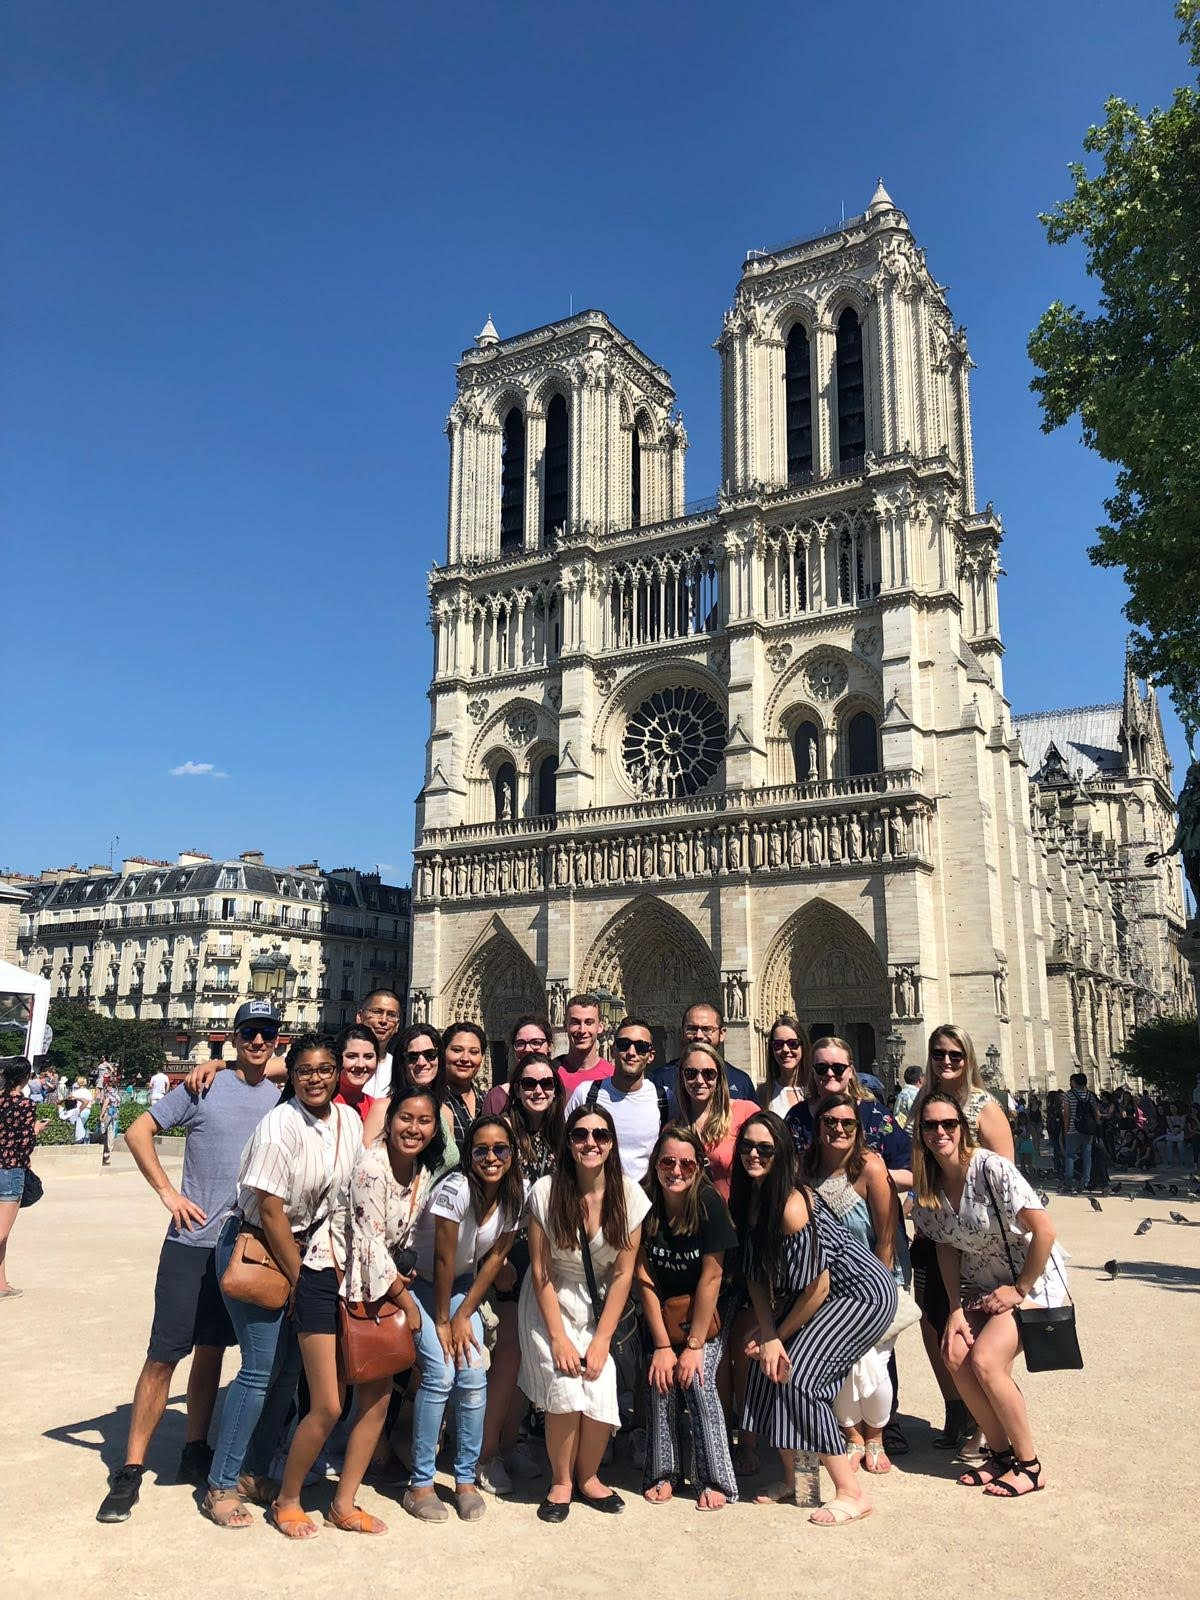 Colin with his group on Rome, London & Paris at Notre Dame Cathedral in Paris.